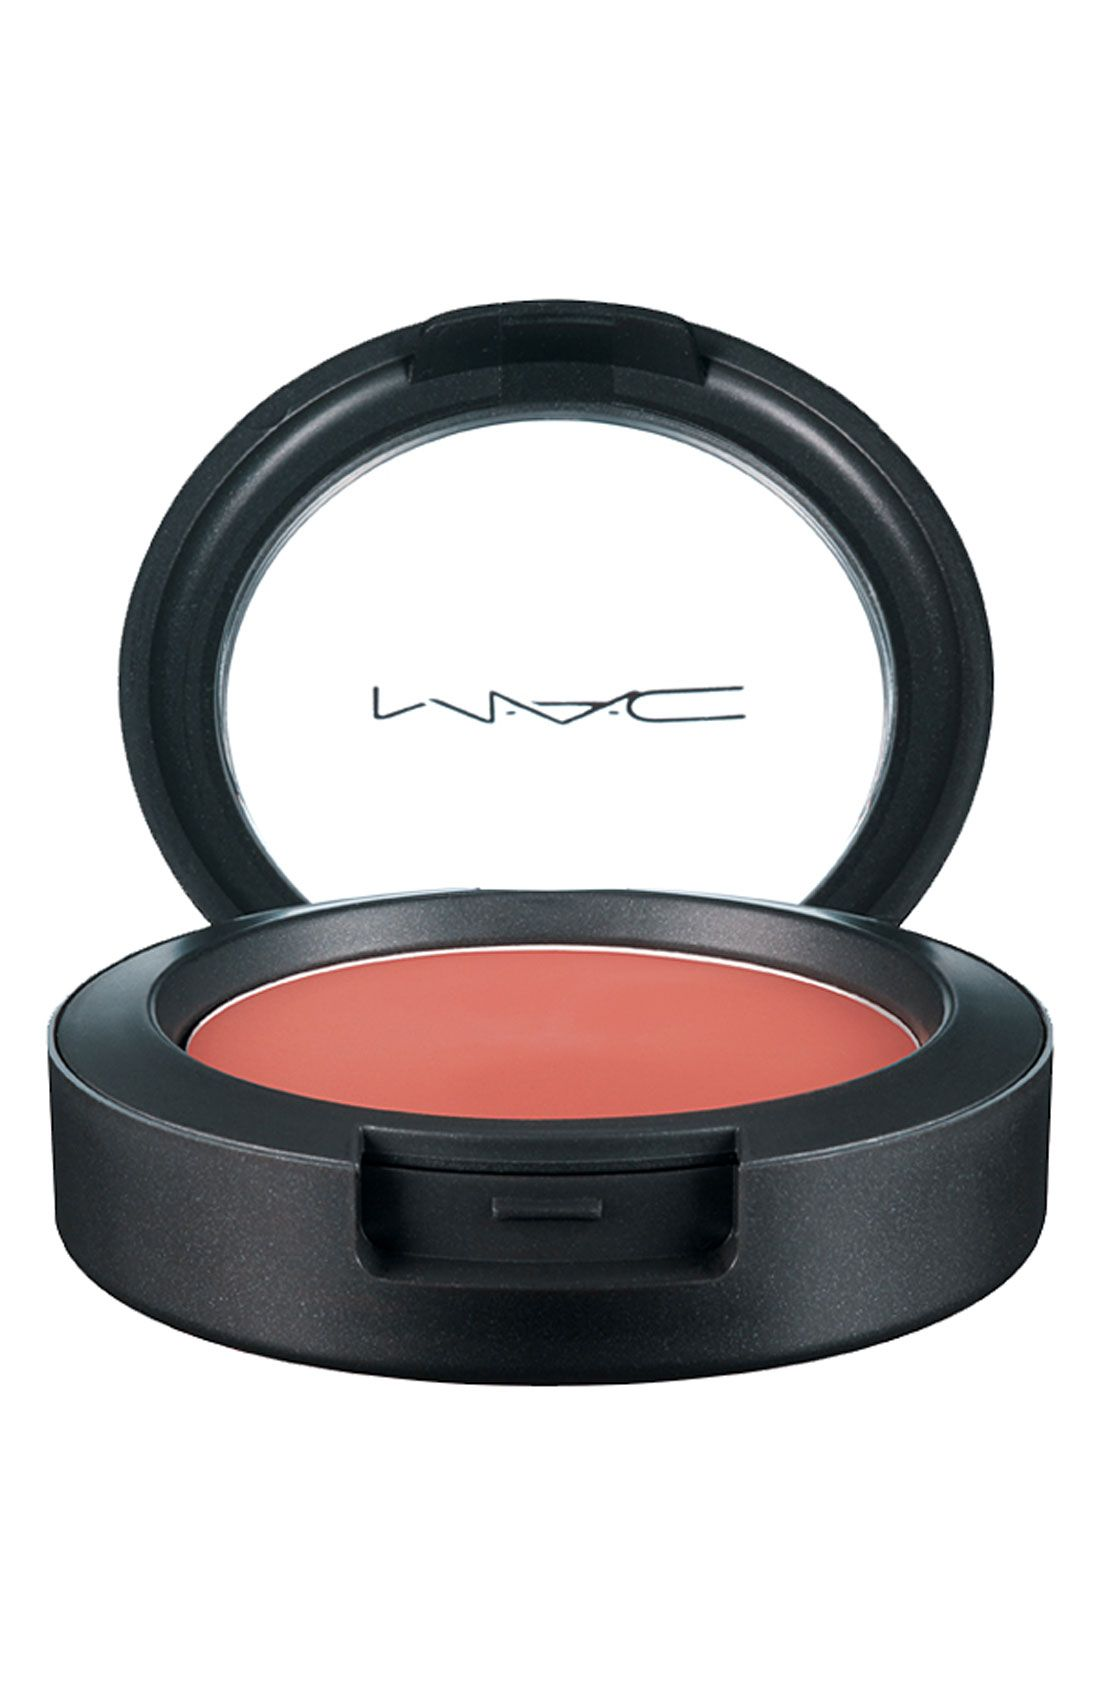 This state-of-the-art M·A·C blush is creamy, easy-to-blend, and results in a natural finish that's smooth, dewy-fresh and seriously long-lasting.